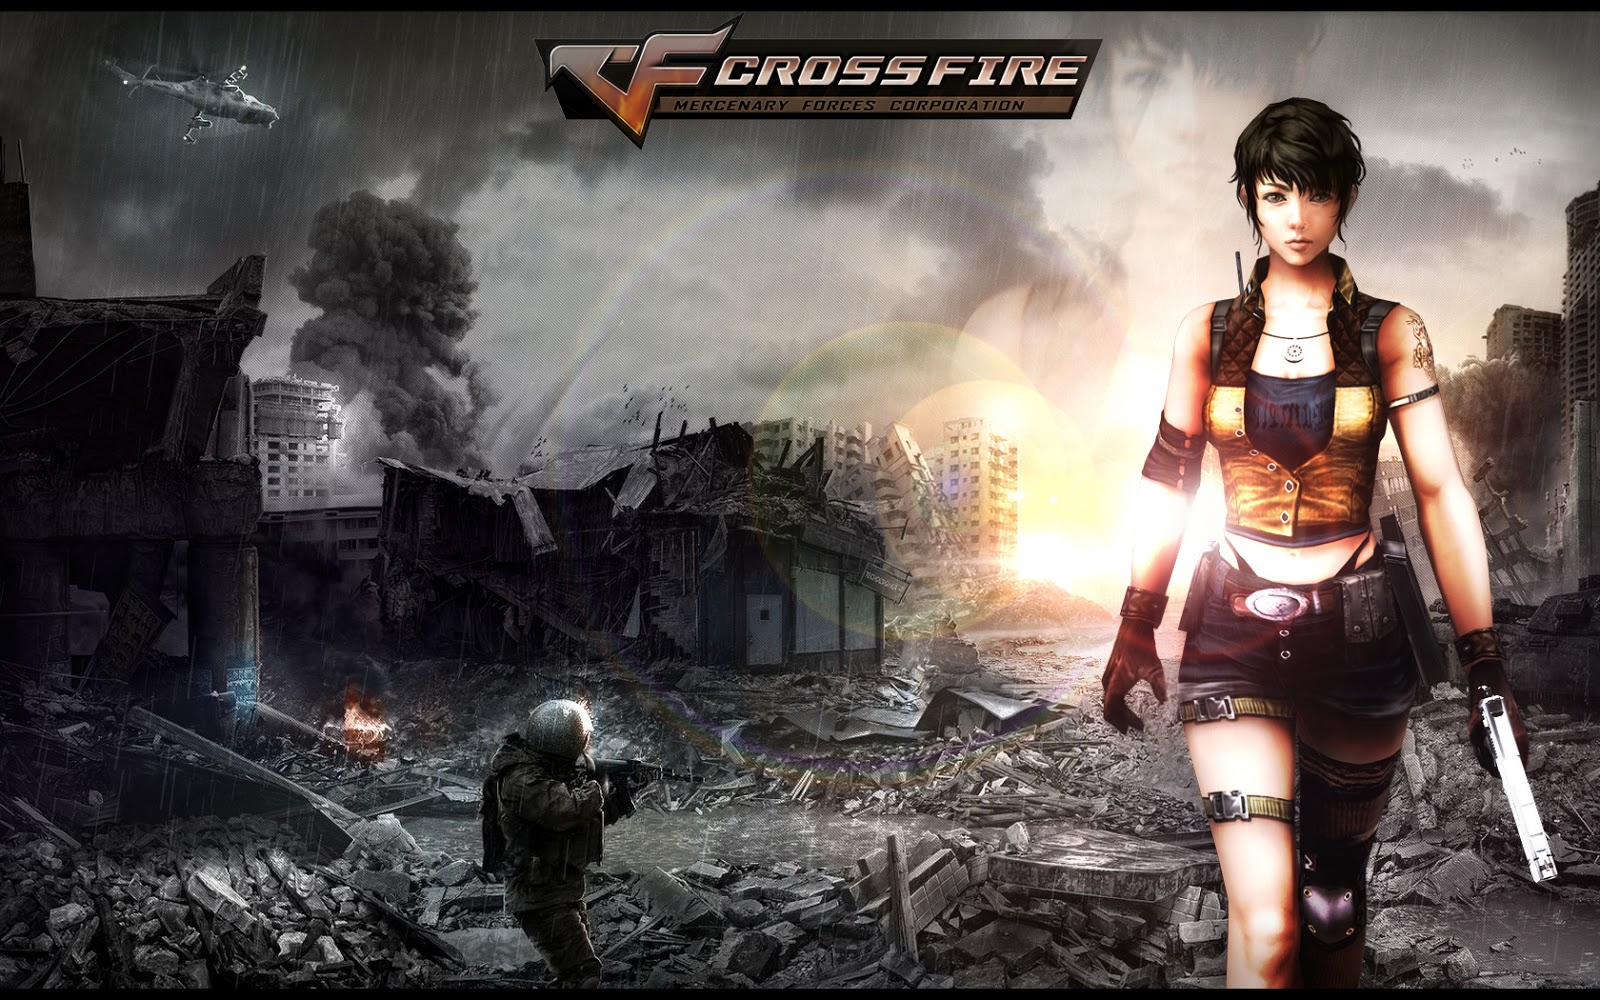 wallpaper crossfire collection 2011 - photo #10